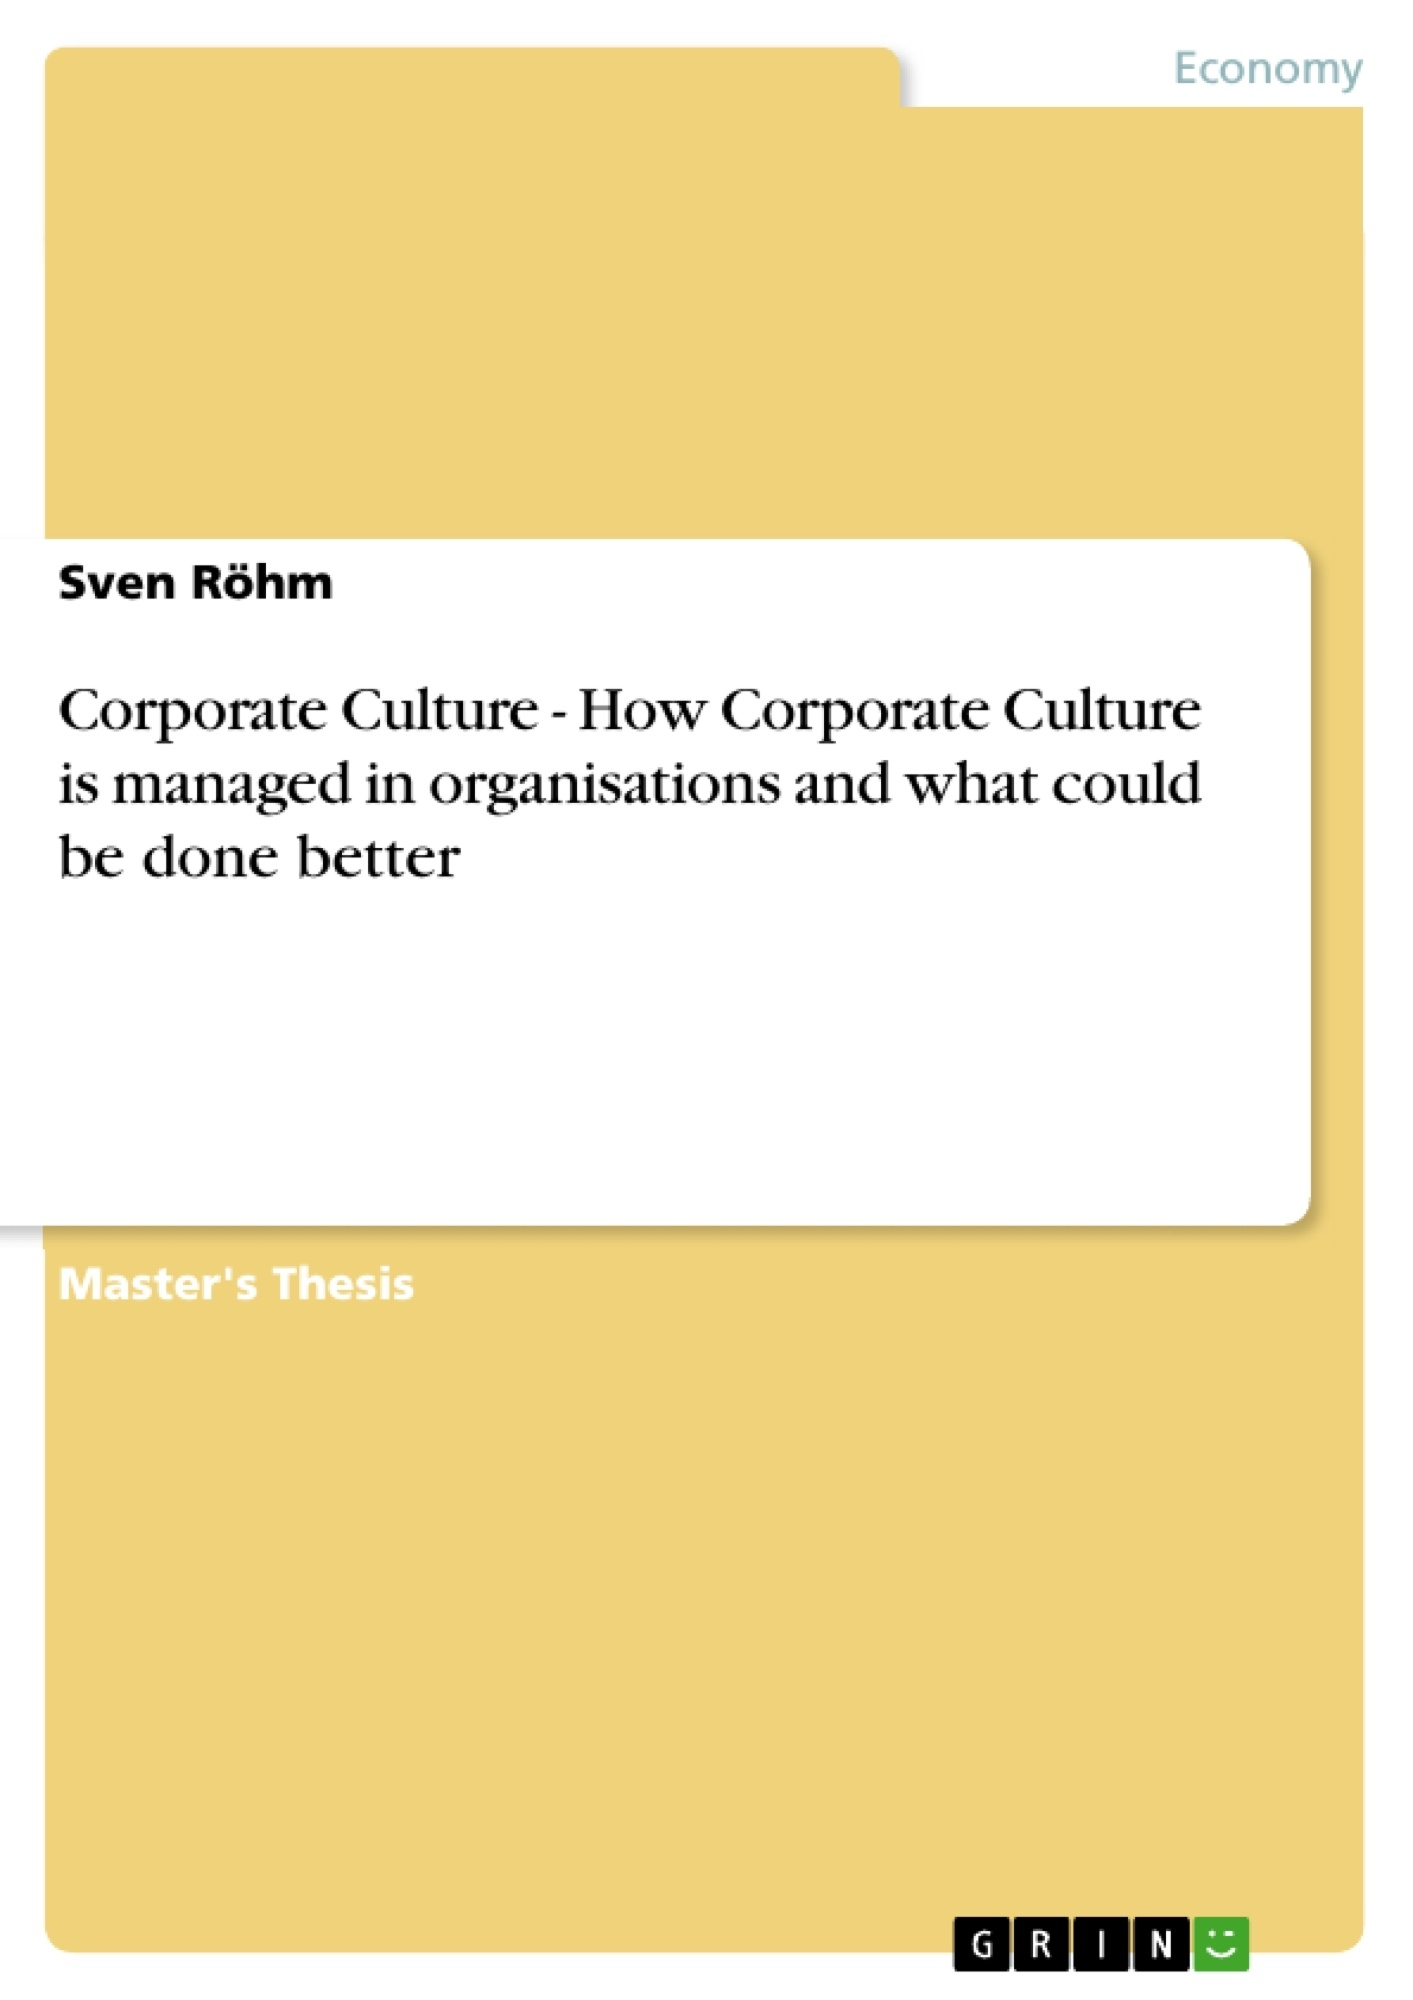 Title: Corporate Culture - How Corporate Culture is managed in organisations and what could be done better